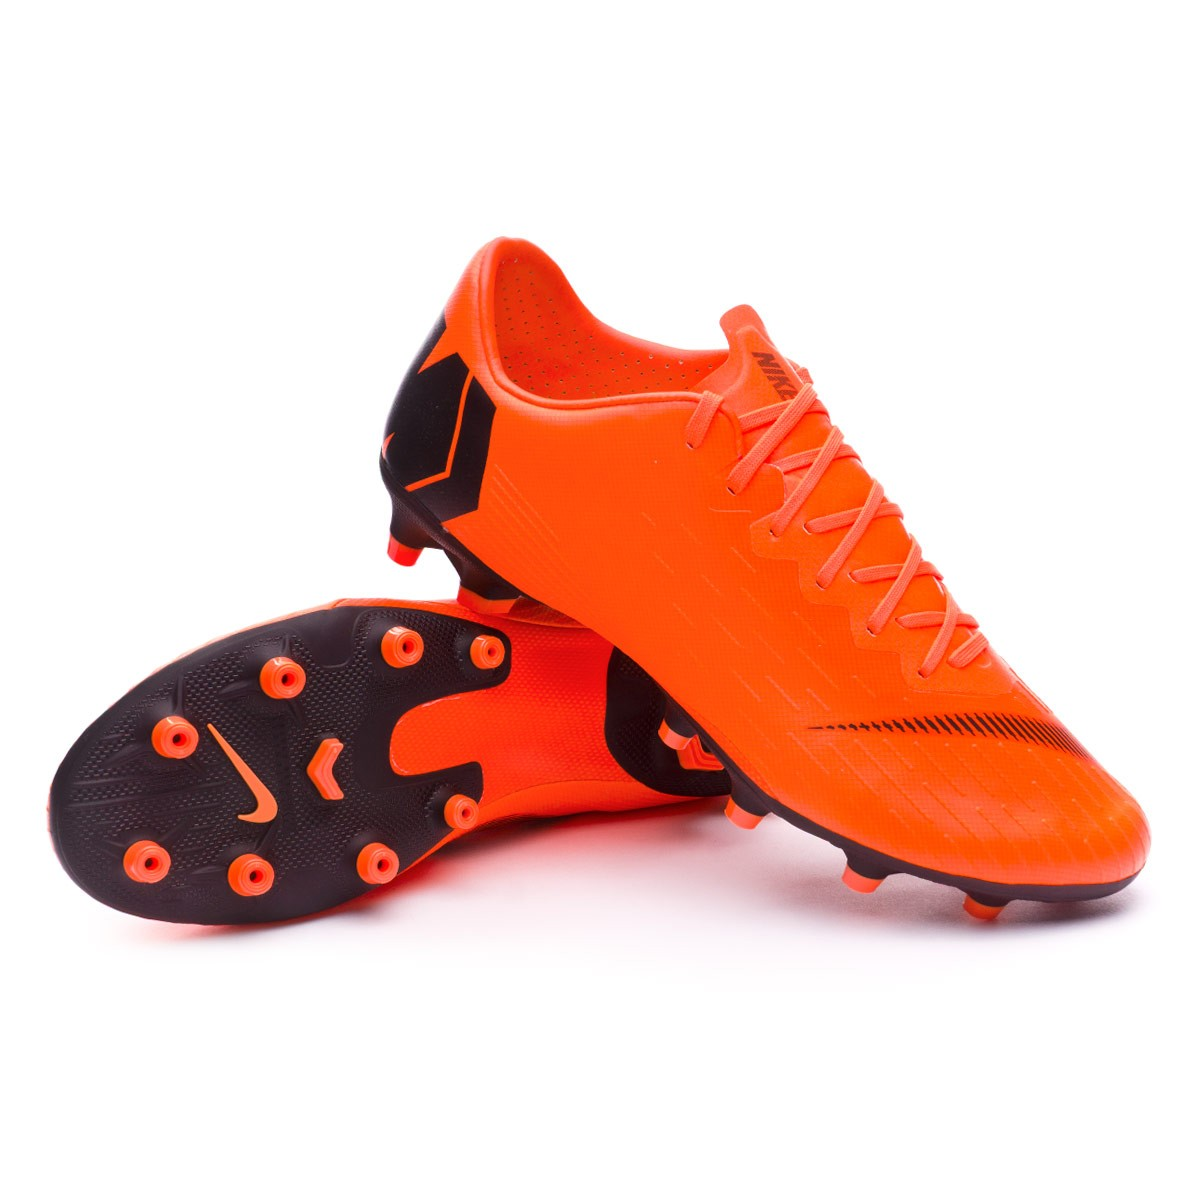 Boot Nike Mercurial Vapor XII Pro AG-Pro Total orange-Black-Volt ... 7e3b9ee352095